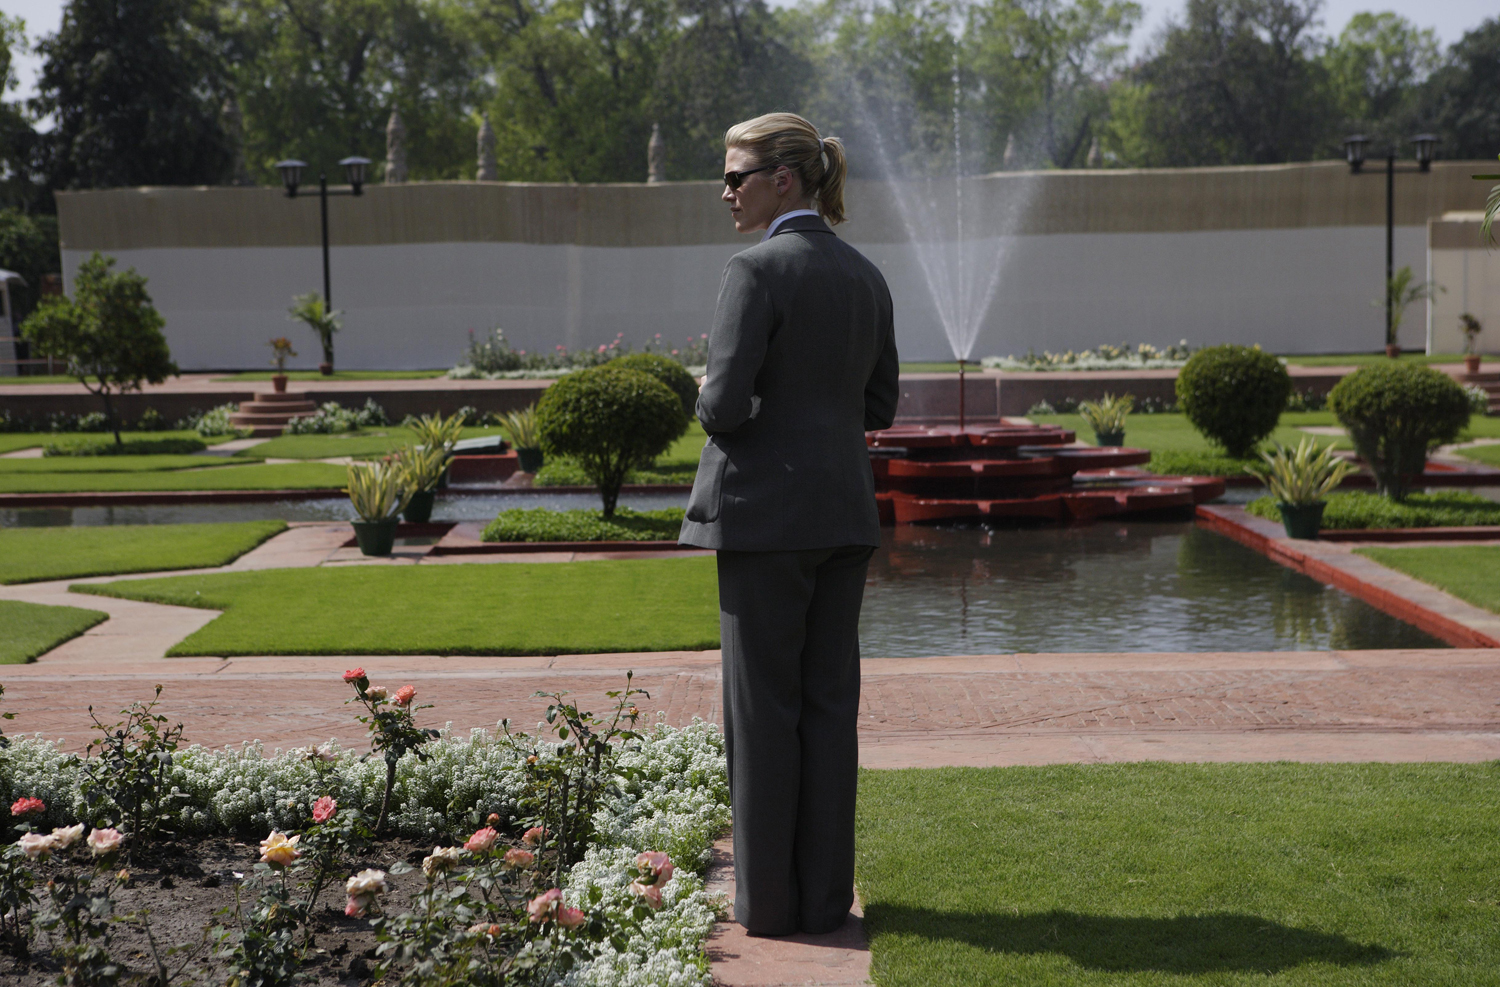 March 2, 2006. A U.S. Secret Service agent stands in a garden during a joint news conference by President George W. Bush and Indian Prime Minister Manmohan Singh in New Delhi.